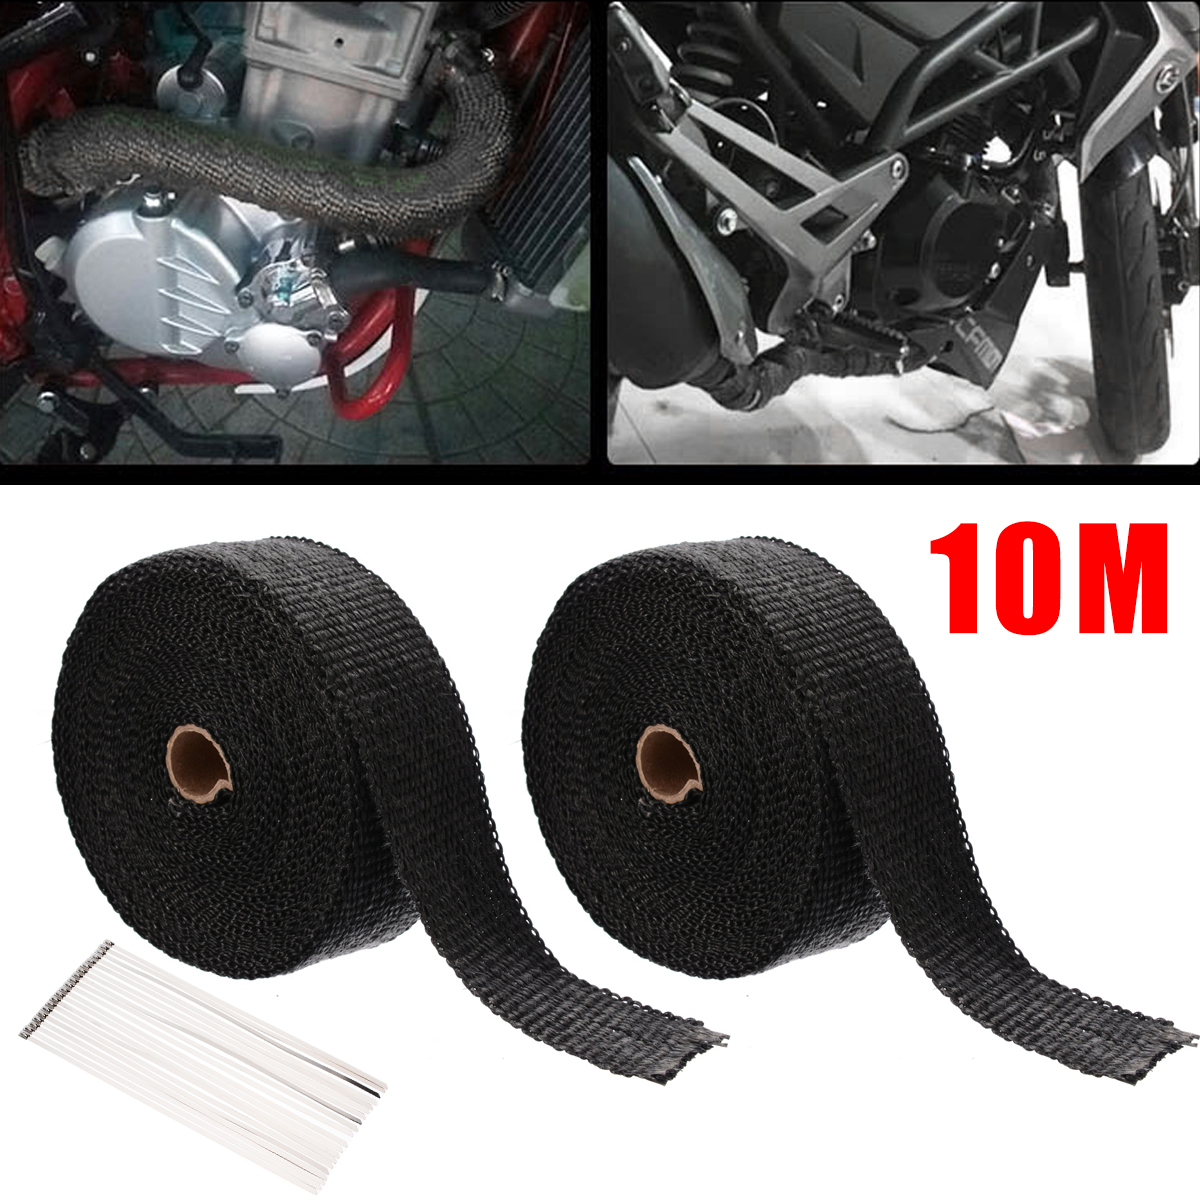 2 Roll Motorcycle Incombustible Heat Exhaust Thermal Wrap Tape Stainless Ties 10 Meters 1 Roll with 20 Cable Ties